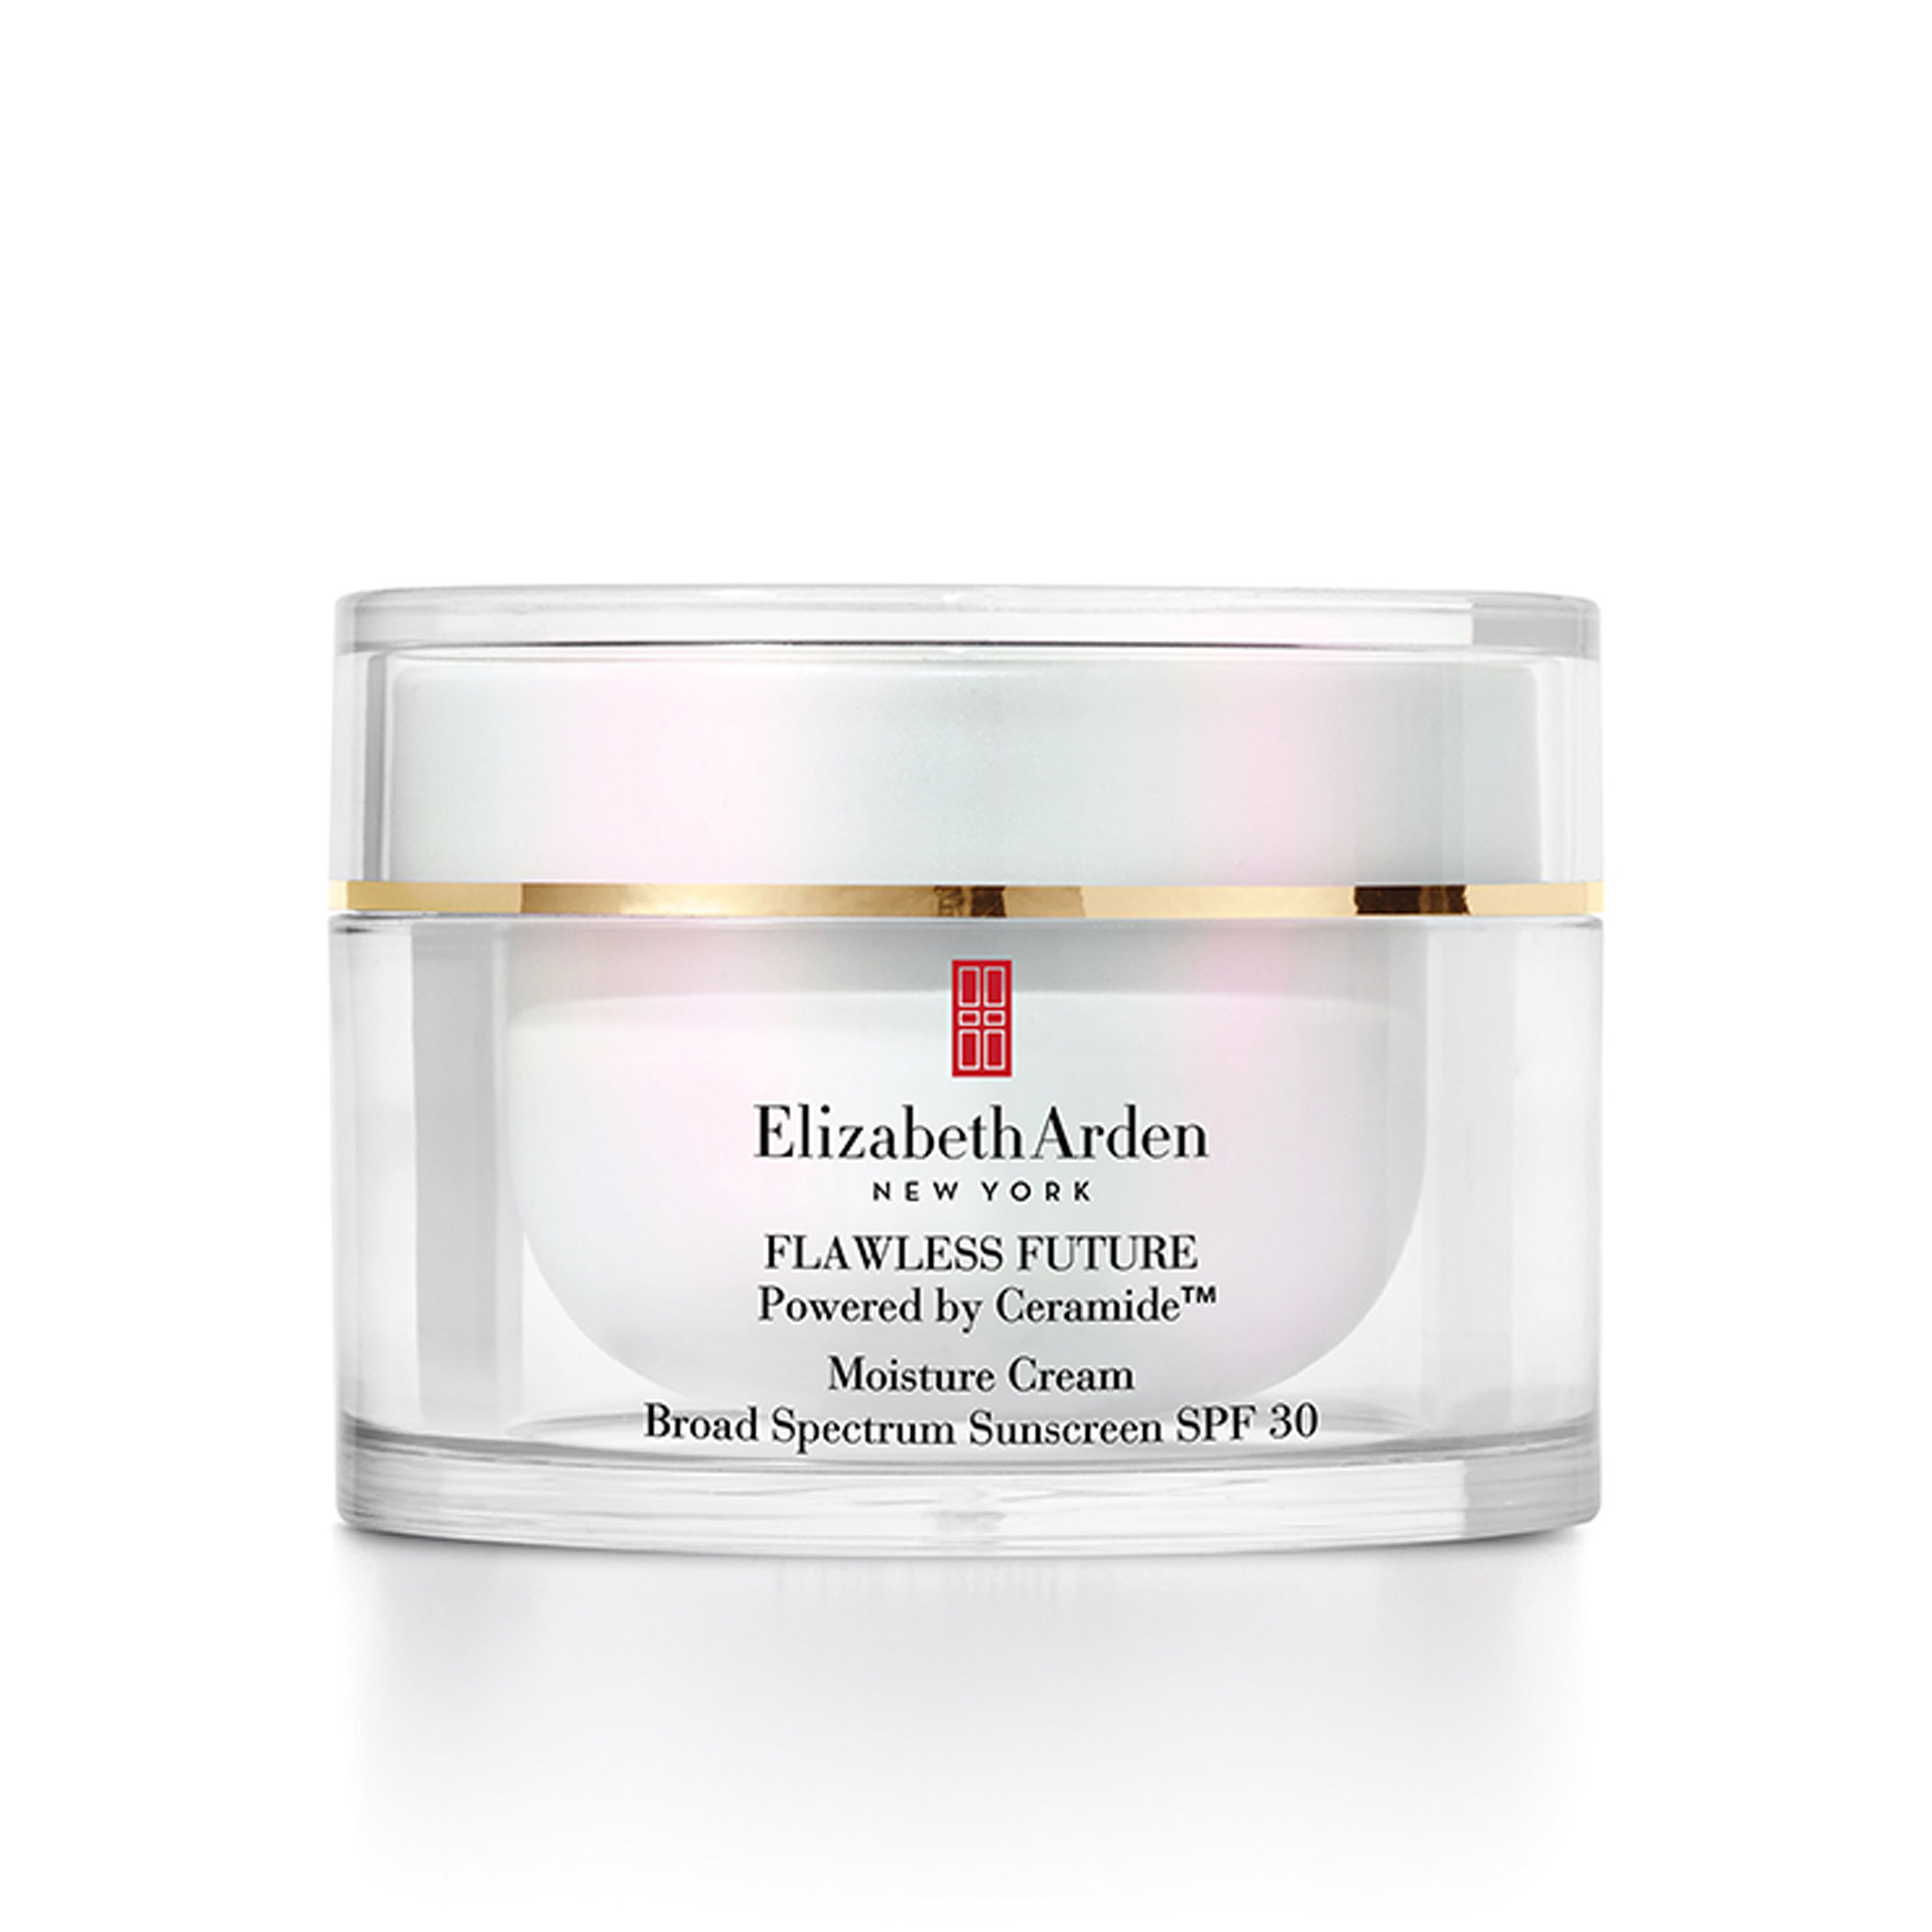 Flawless Future Moisture Cream Spf 30